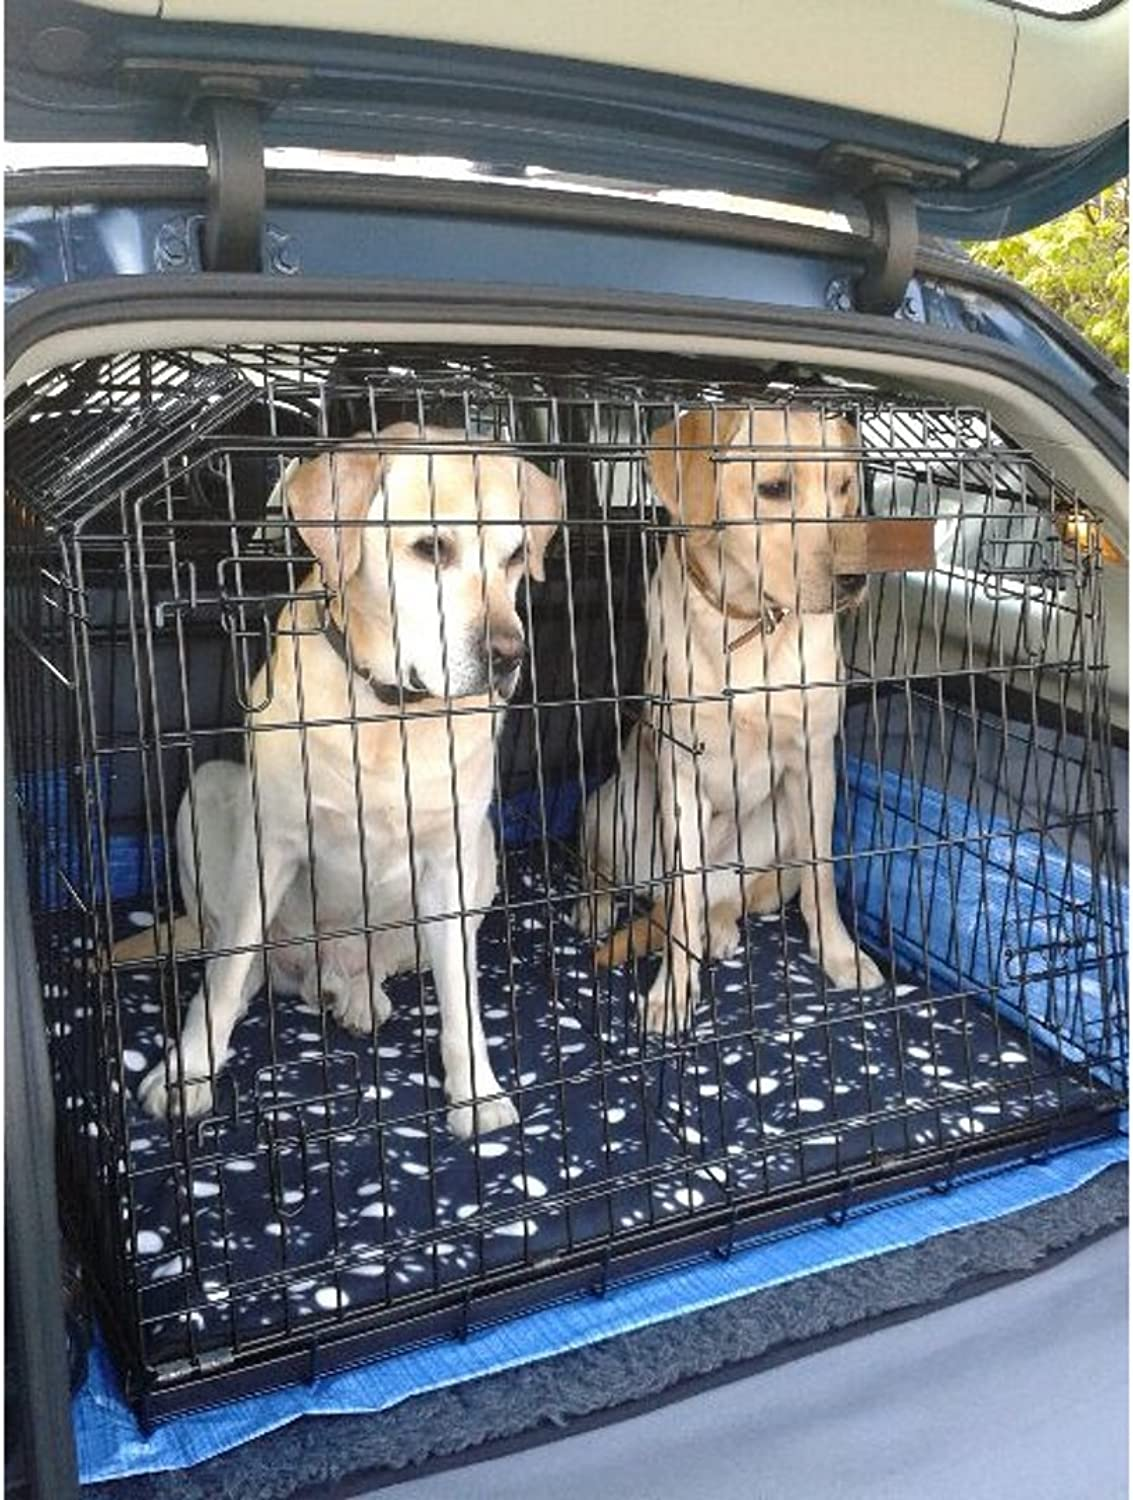 Arrow SAAB 93 SPORTSWAGON SLOPED ESTATE 4x4 CAR DOG CAGE TRAVEL CRATE PUPPY BOOT GUARD CAGES